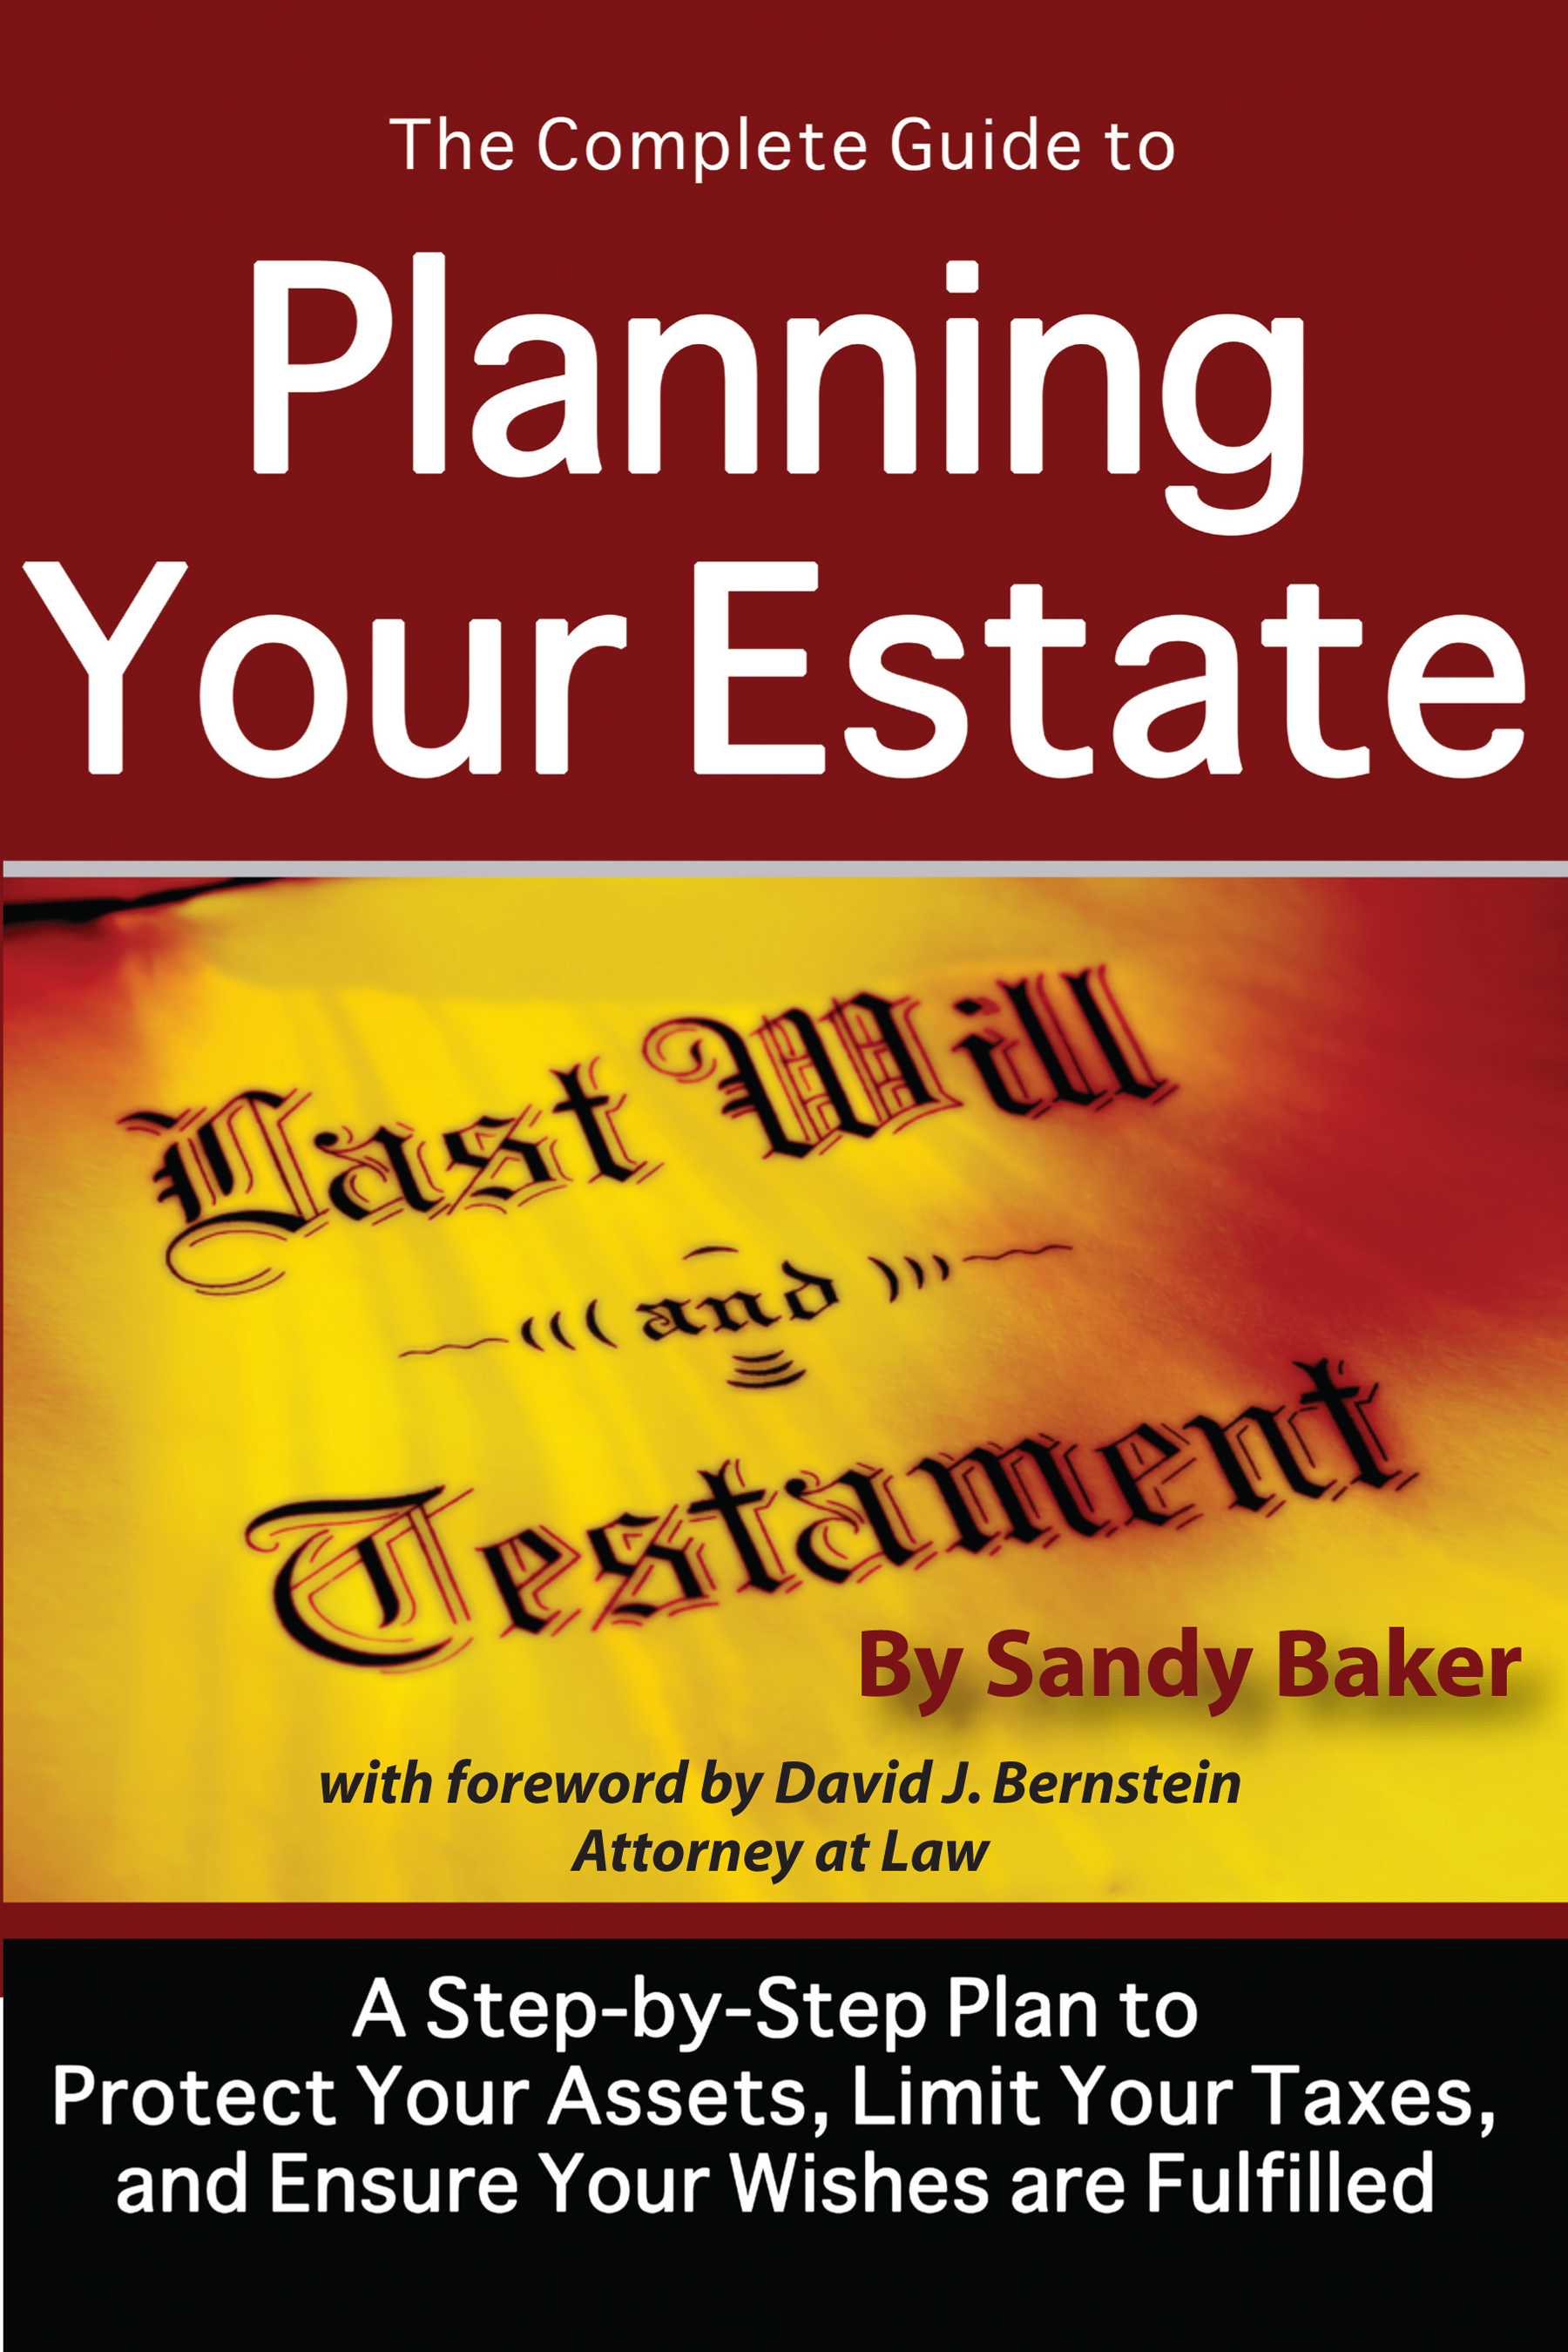 The Complete Guide to Planning Your Estate  a Step By Step Plan to Protect Your Assets, Limit Your Taxes, and Ensure Your Wishes Are Fulfilled